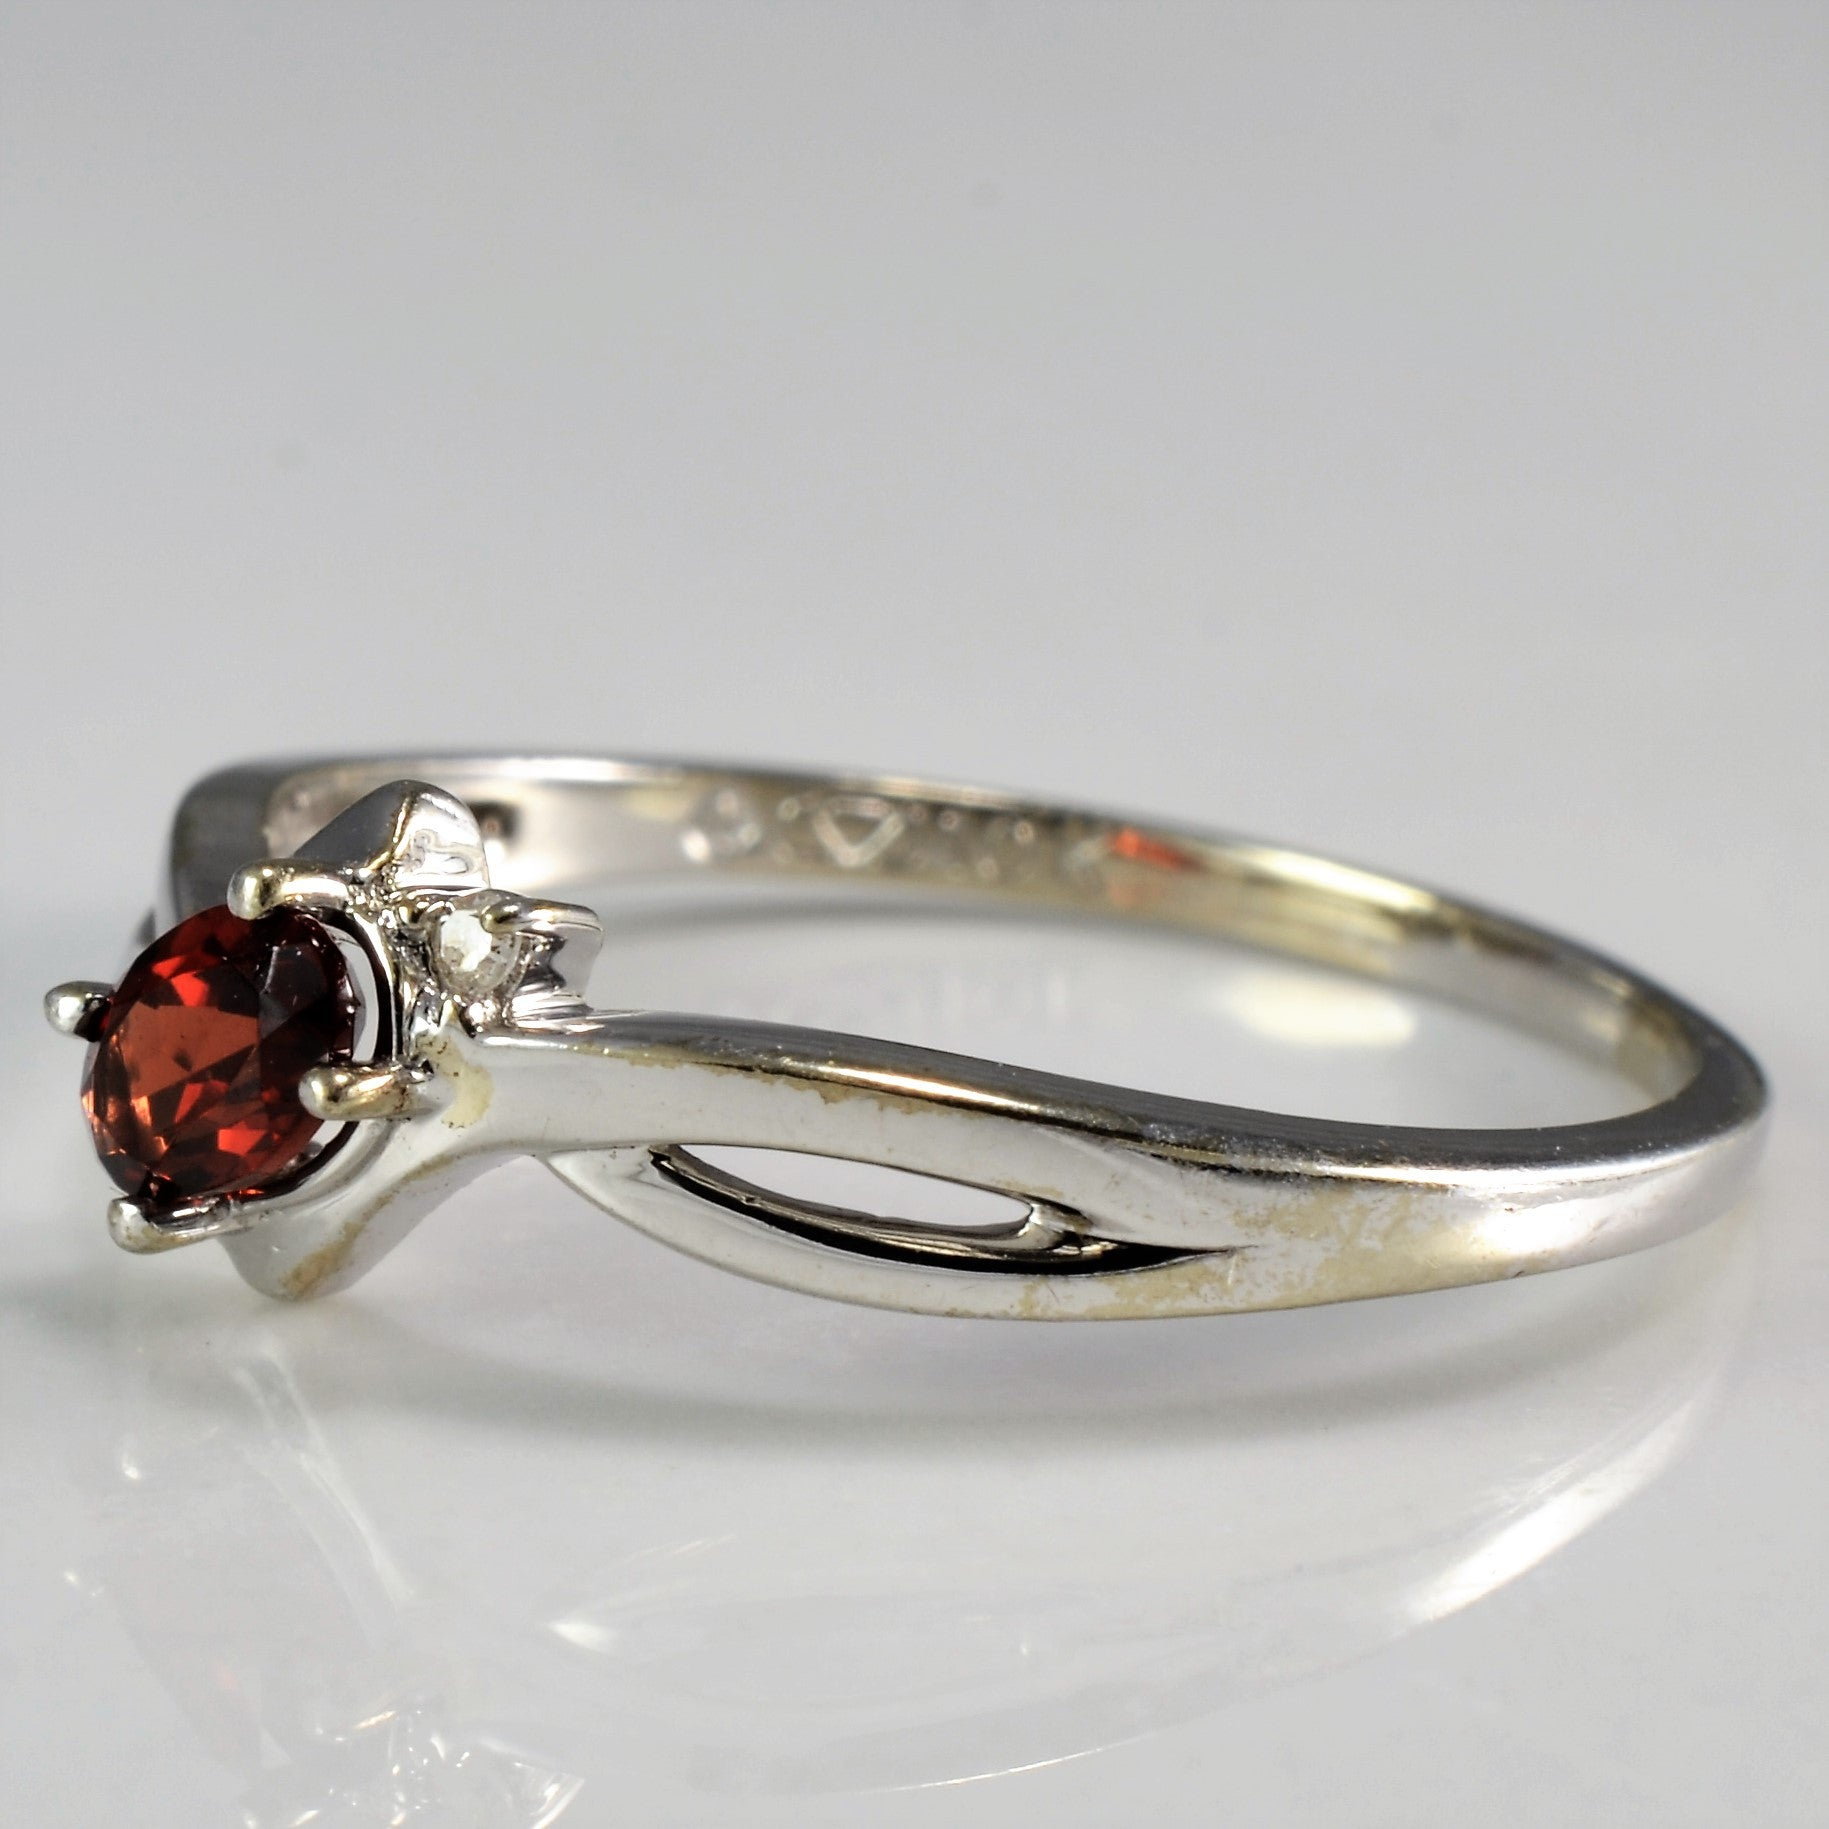 Offset Oval Cut Garnet Bypass Ring | SZ 6.5 |